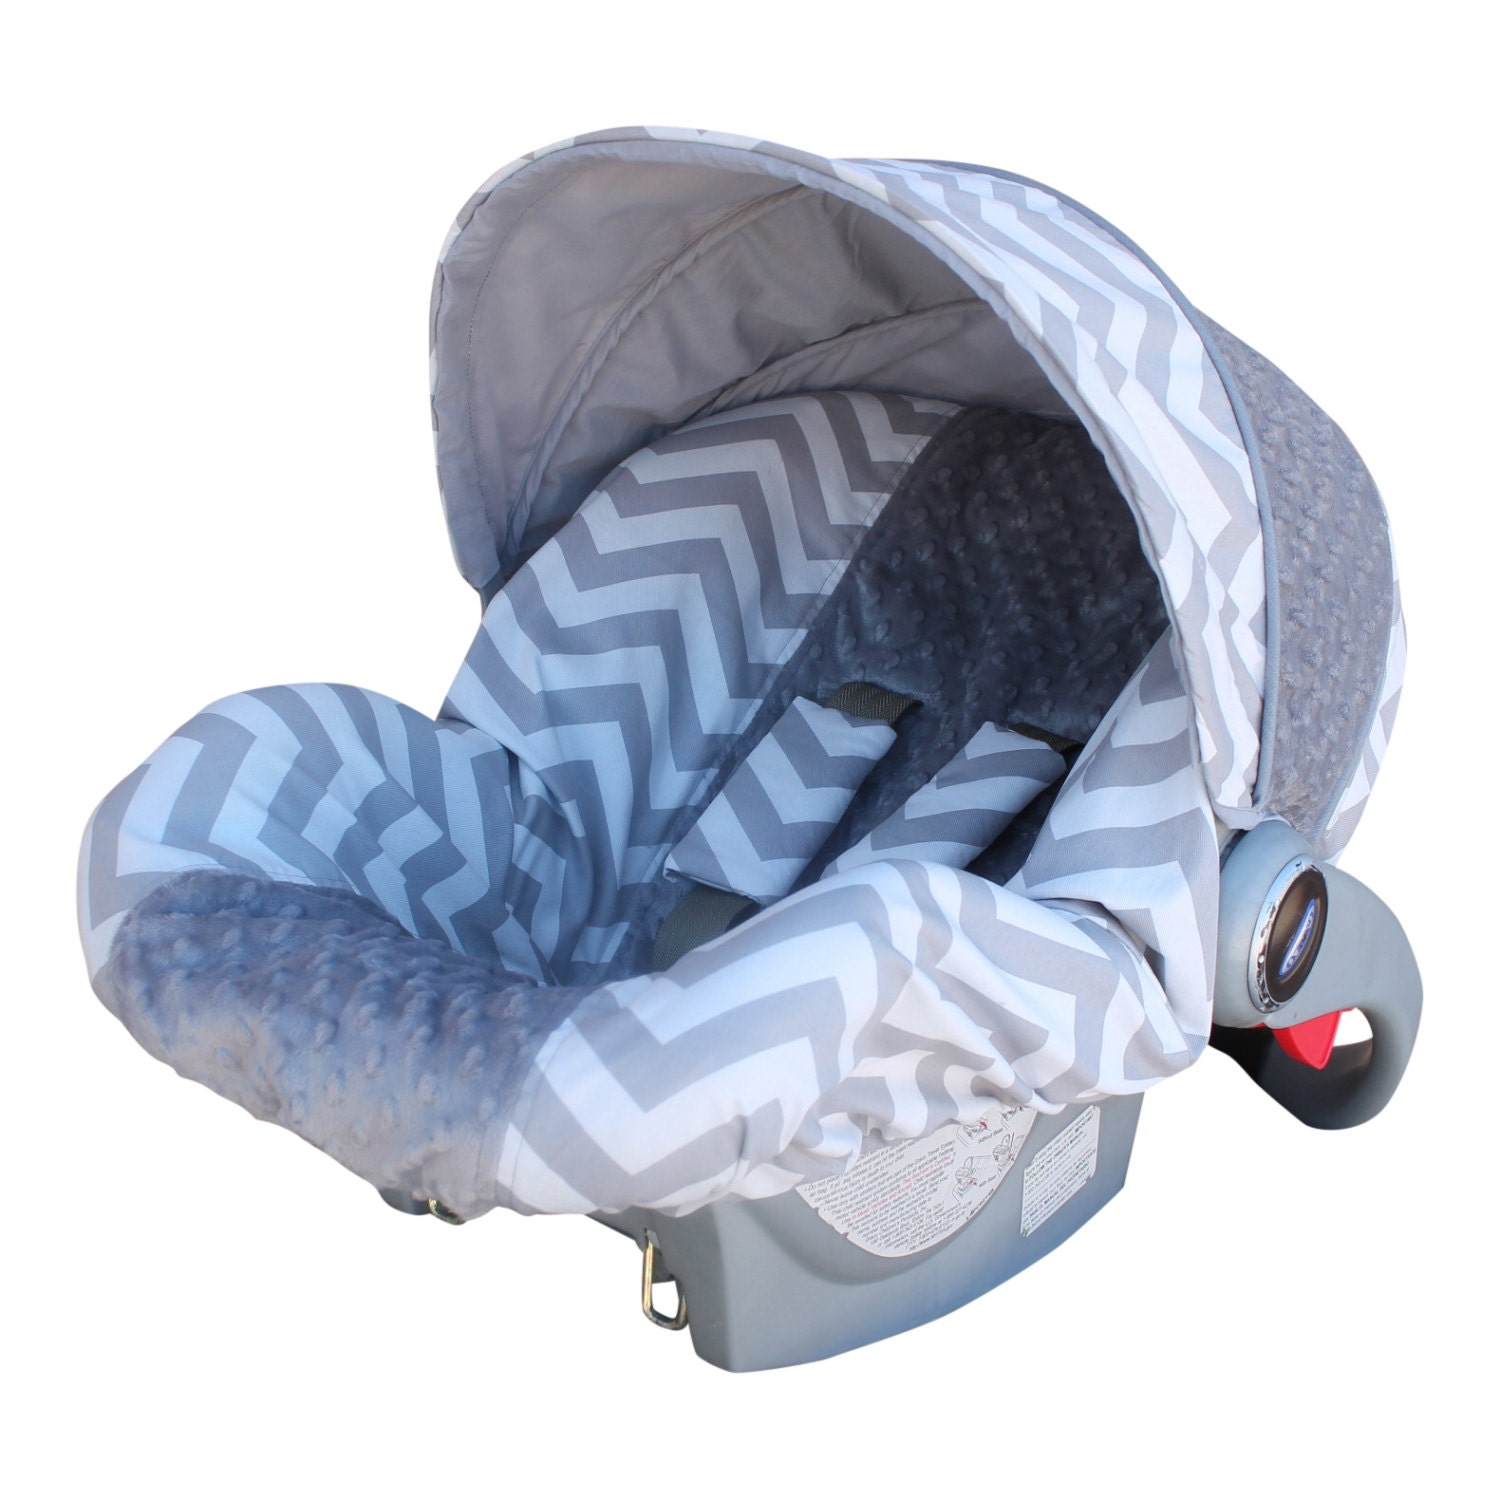 sale baby car seat cover infant car seat cover gray by isewjo. Black Bedroom Furniture Sets. Home Design Ideas